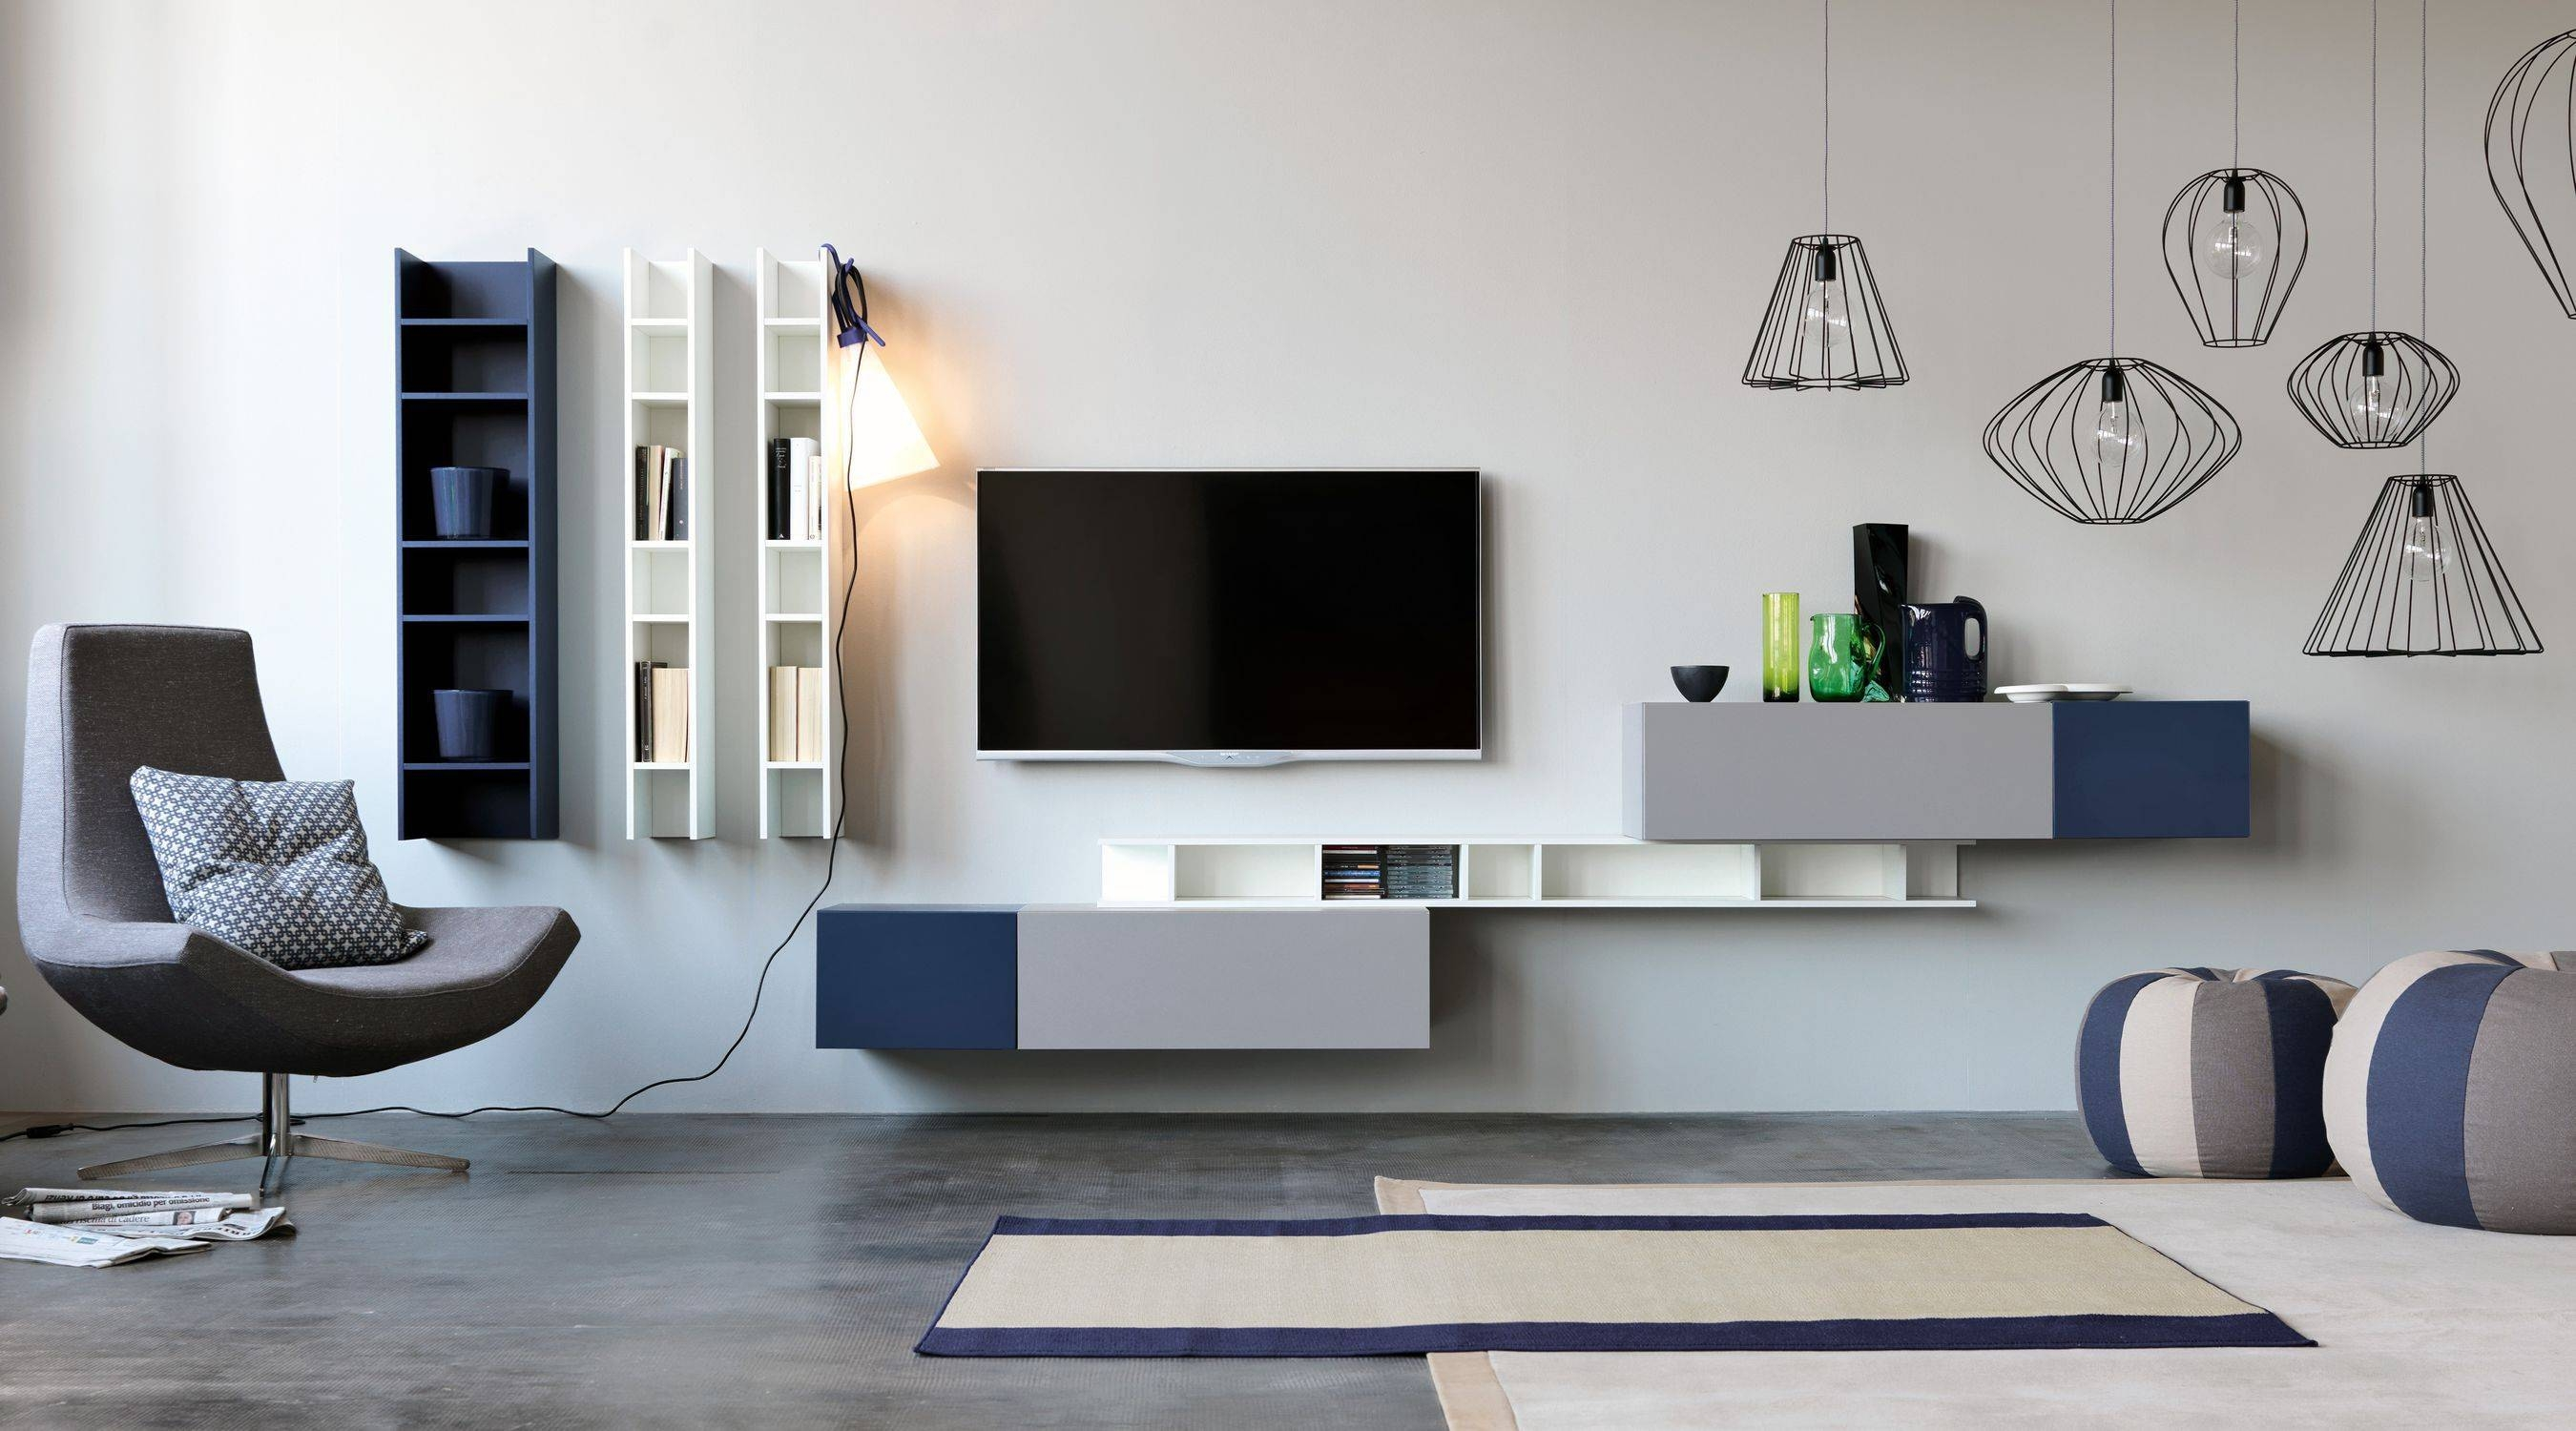 Contemporary Tv Wall Unit / Modular - Citylife 14 - Doimo Cityline regarding Contemporary Tv Wall Units (Image 7 of 15)